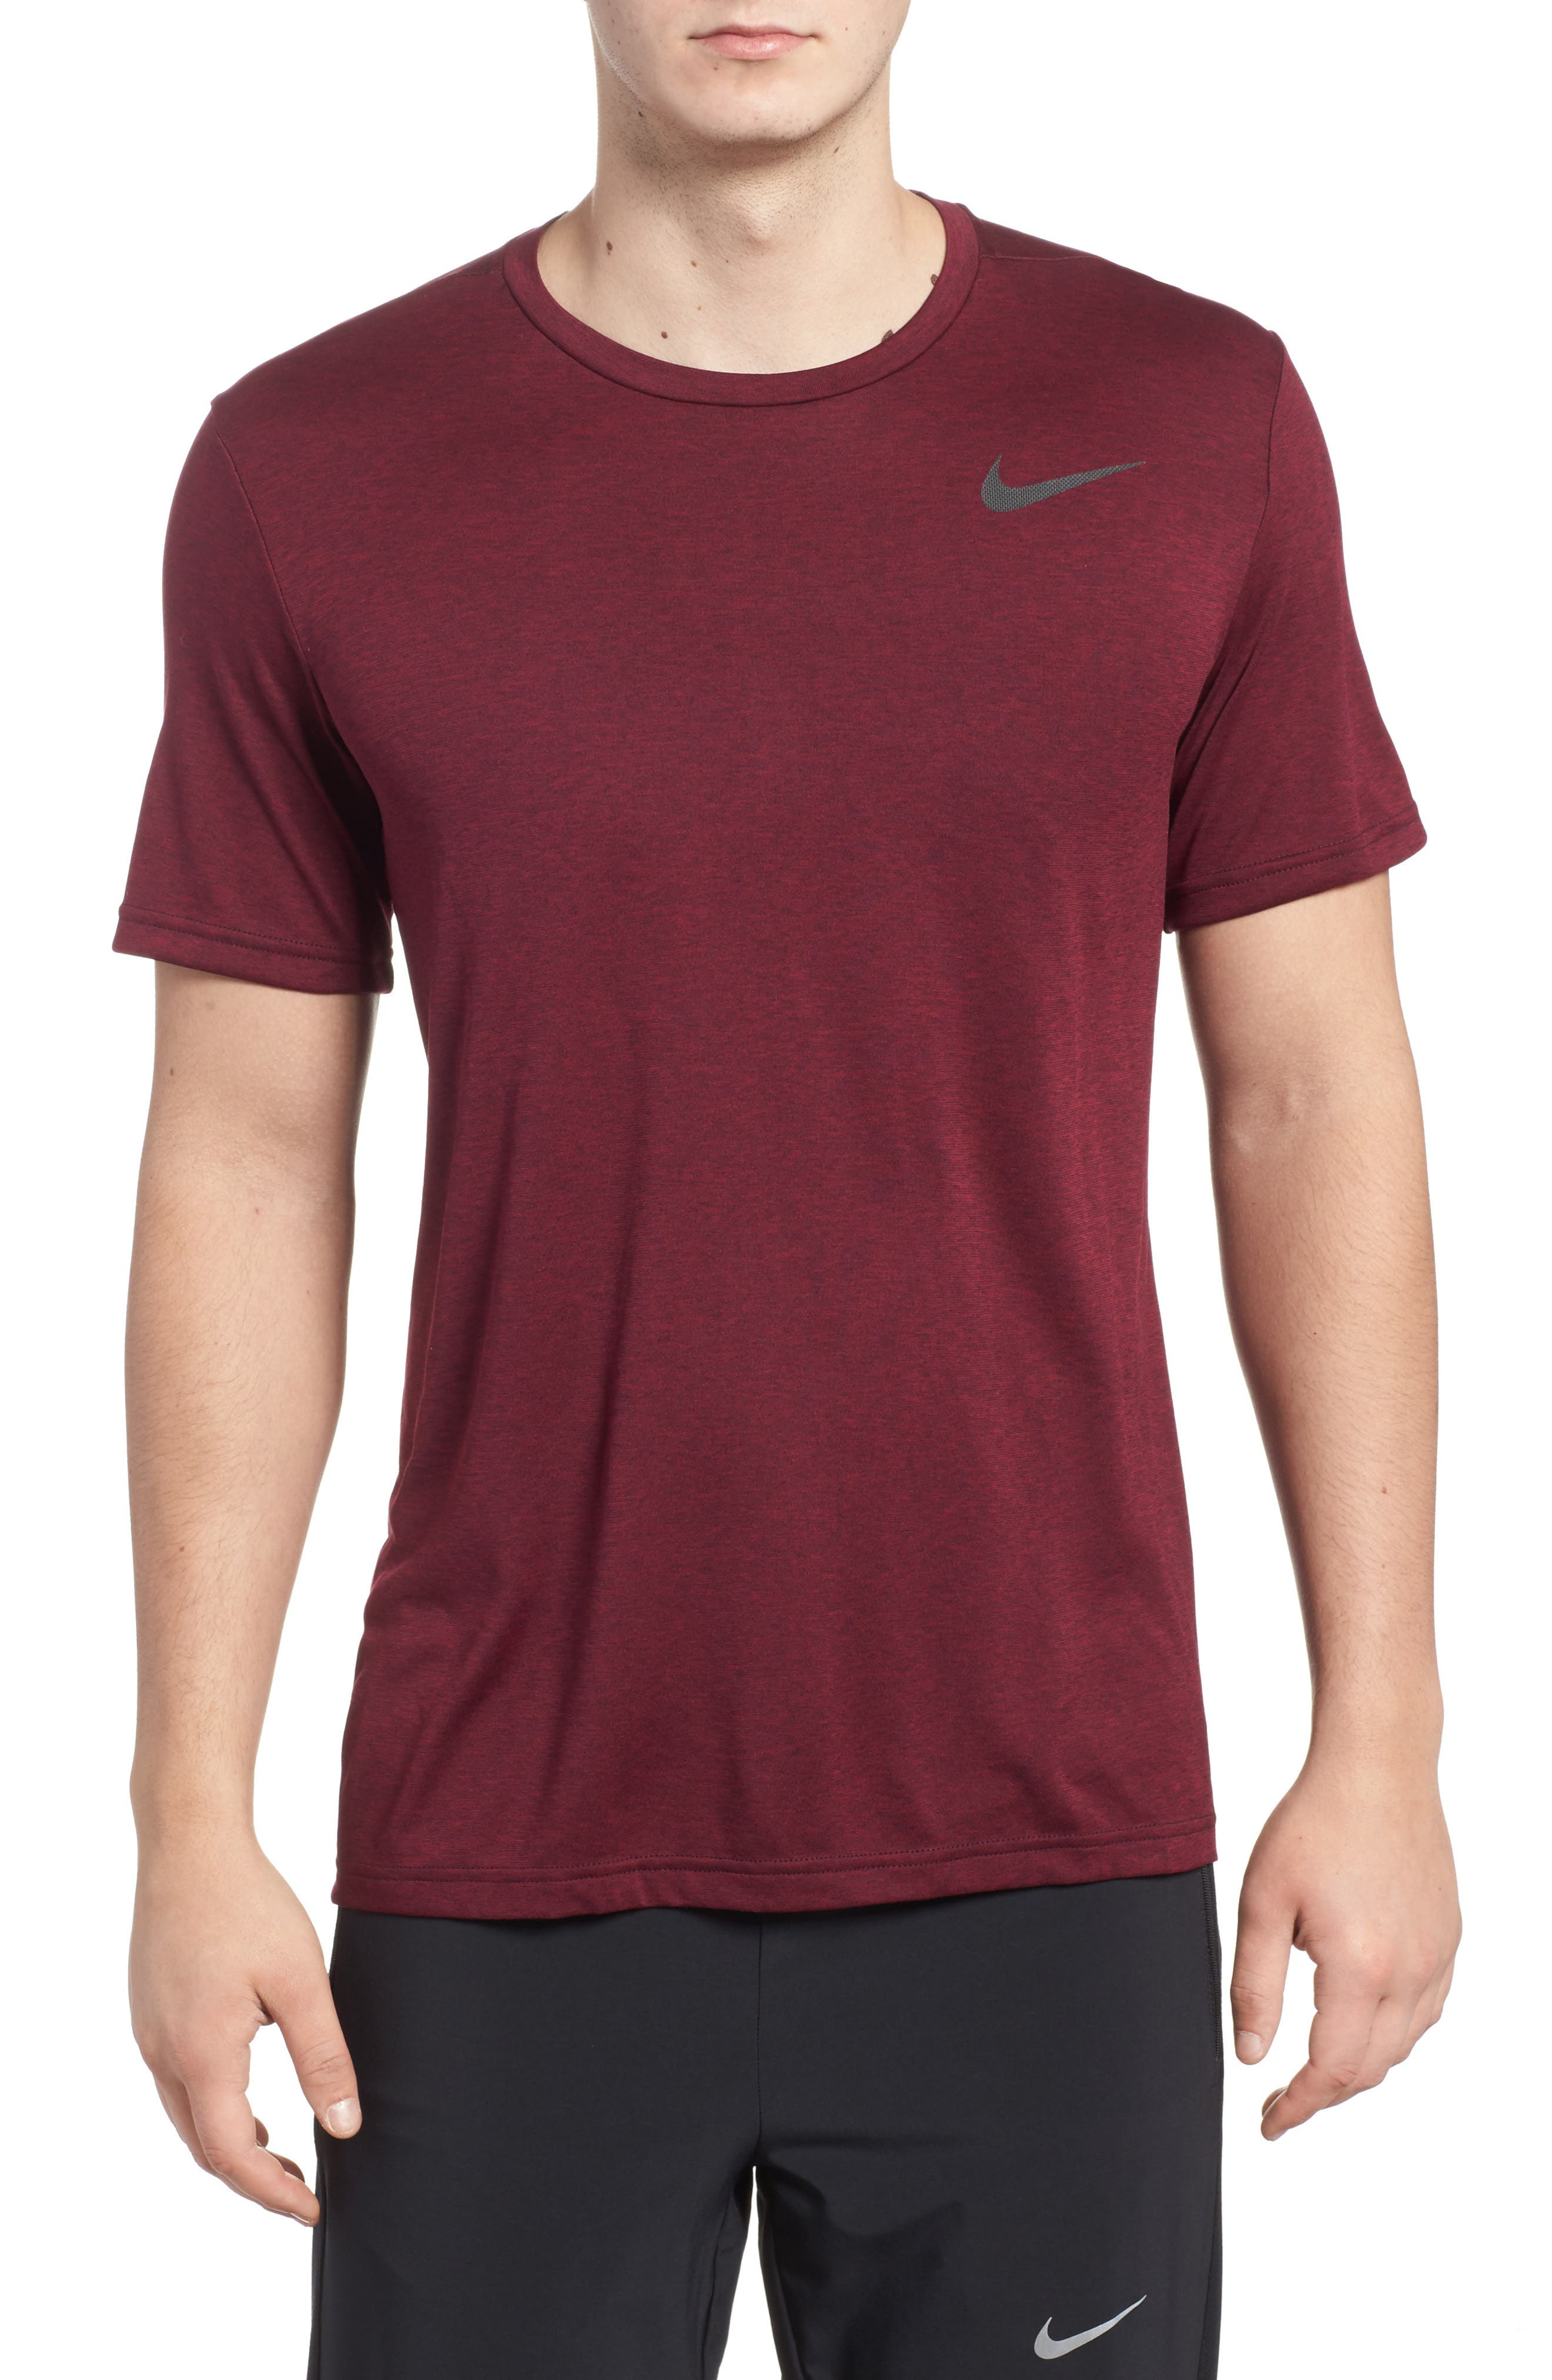 Hyper Dry Training Tee,                         Main,                         color, Port Wine/ Noble Red/ Black